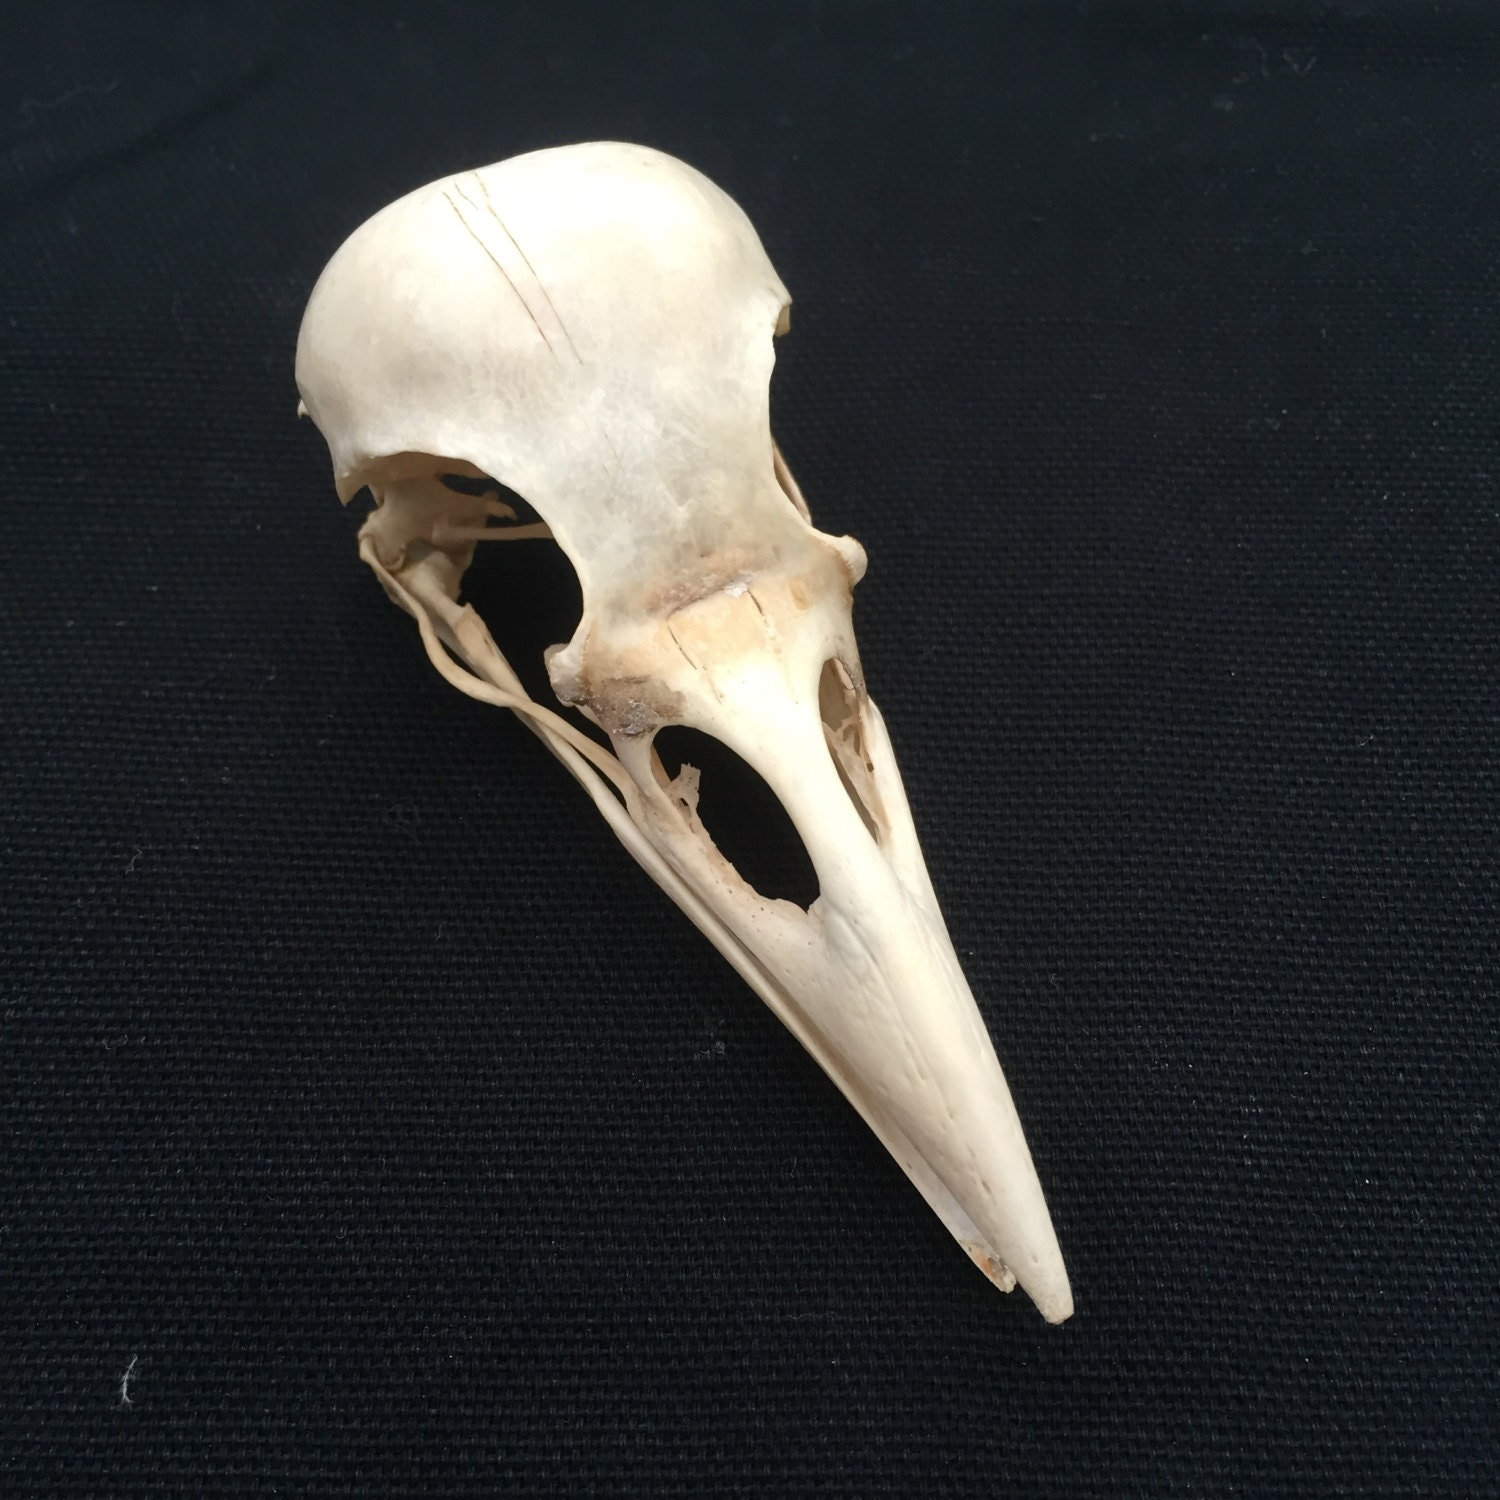 A Genuine Wild English Carrion Crow Skull And A Few Crow